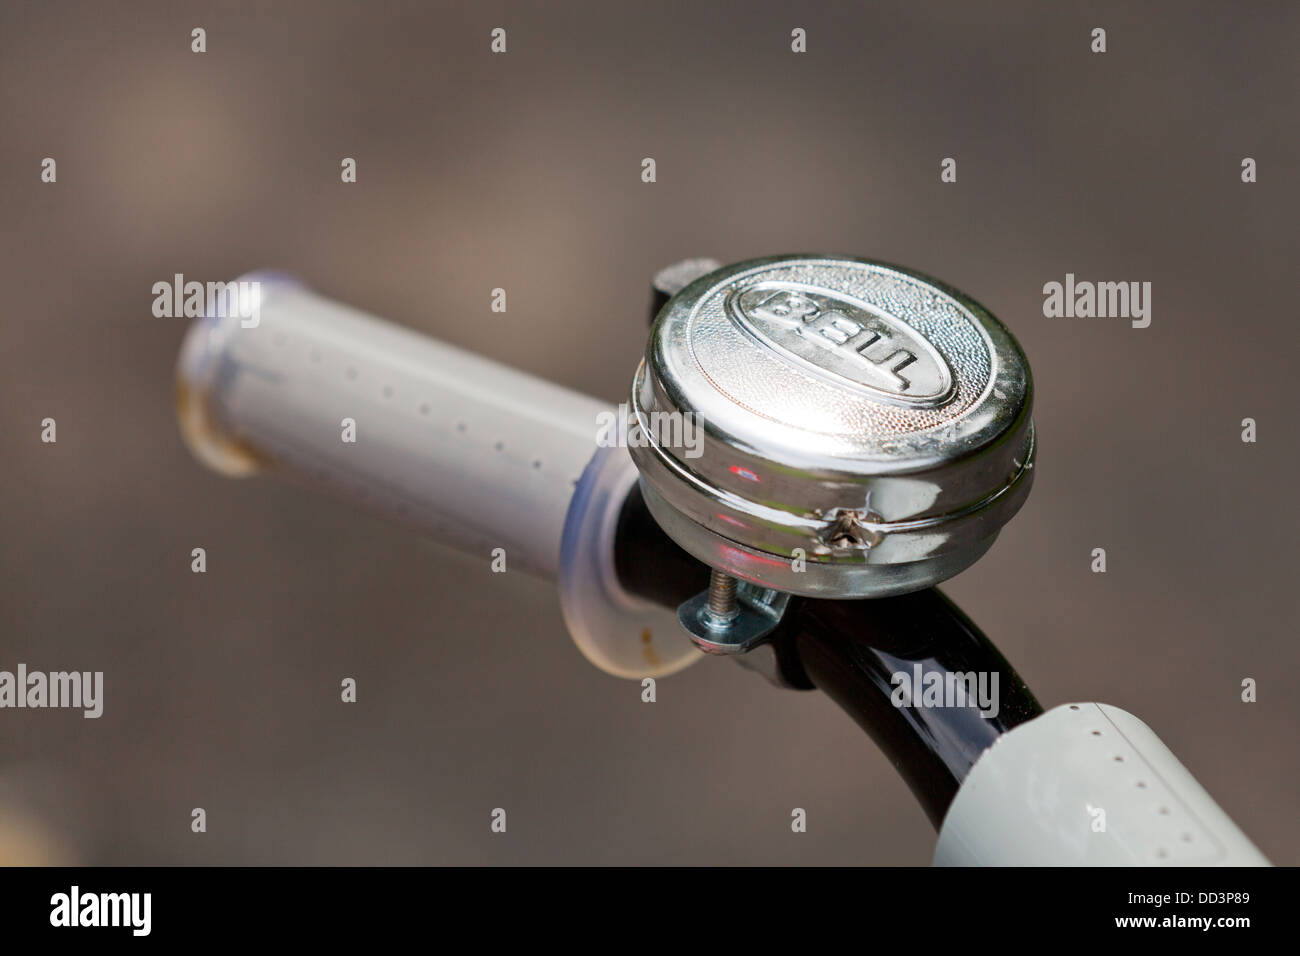 Child's bicycle bell closeup detail - Stock Image